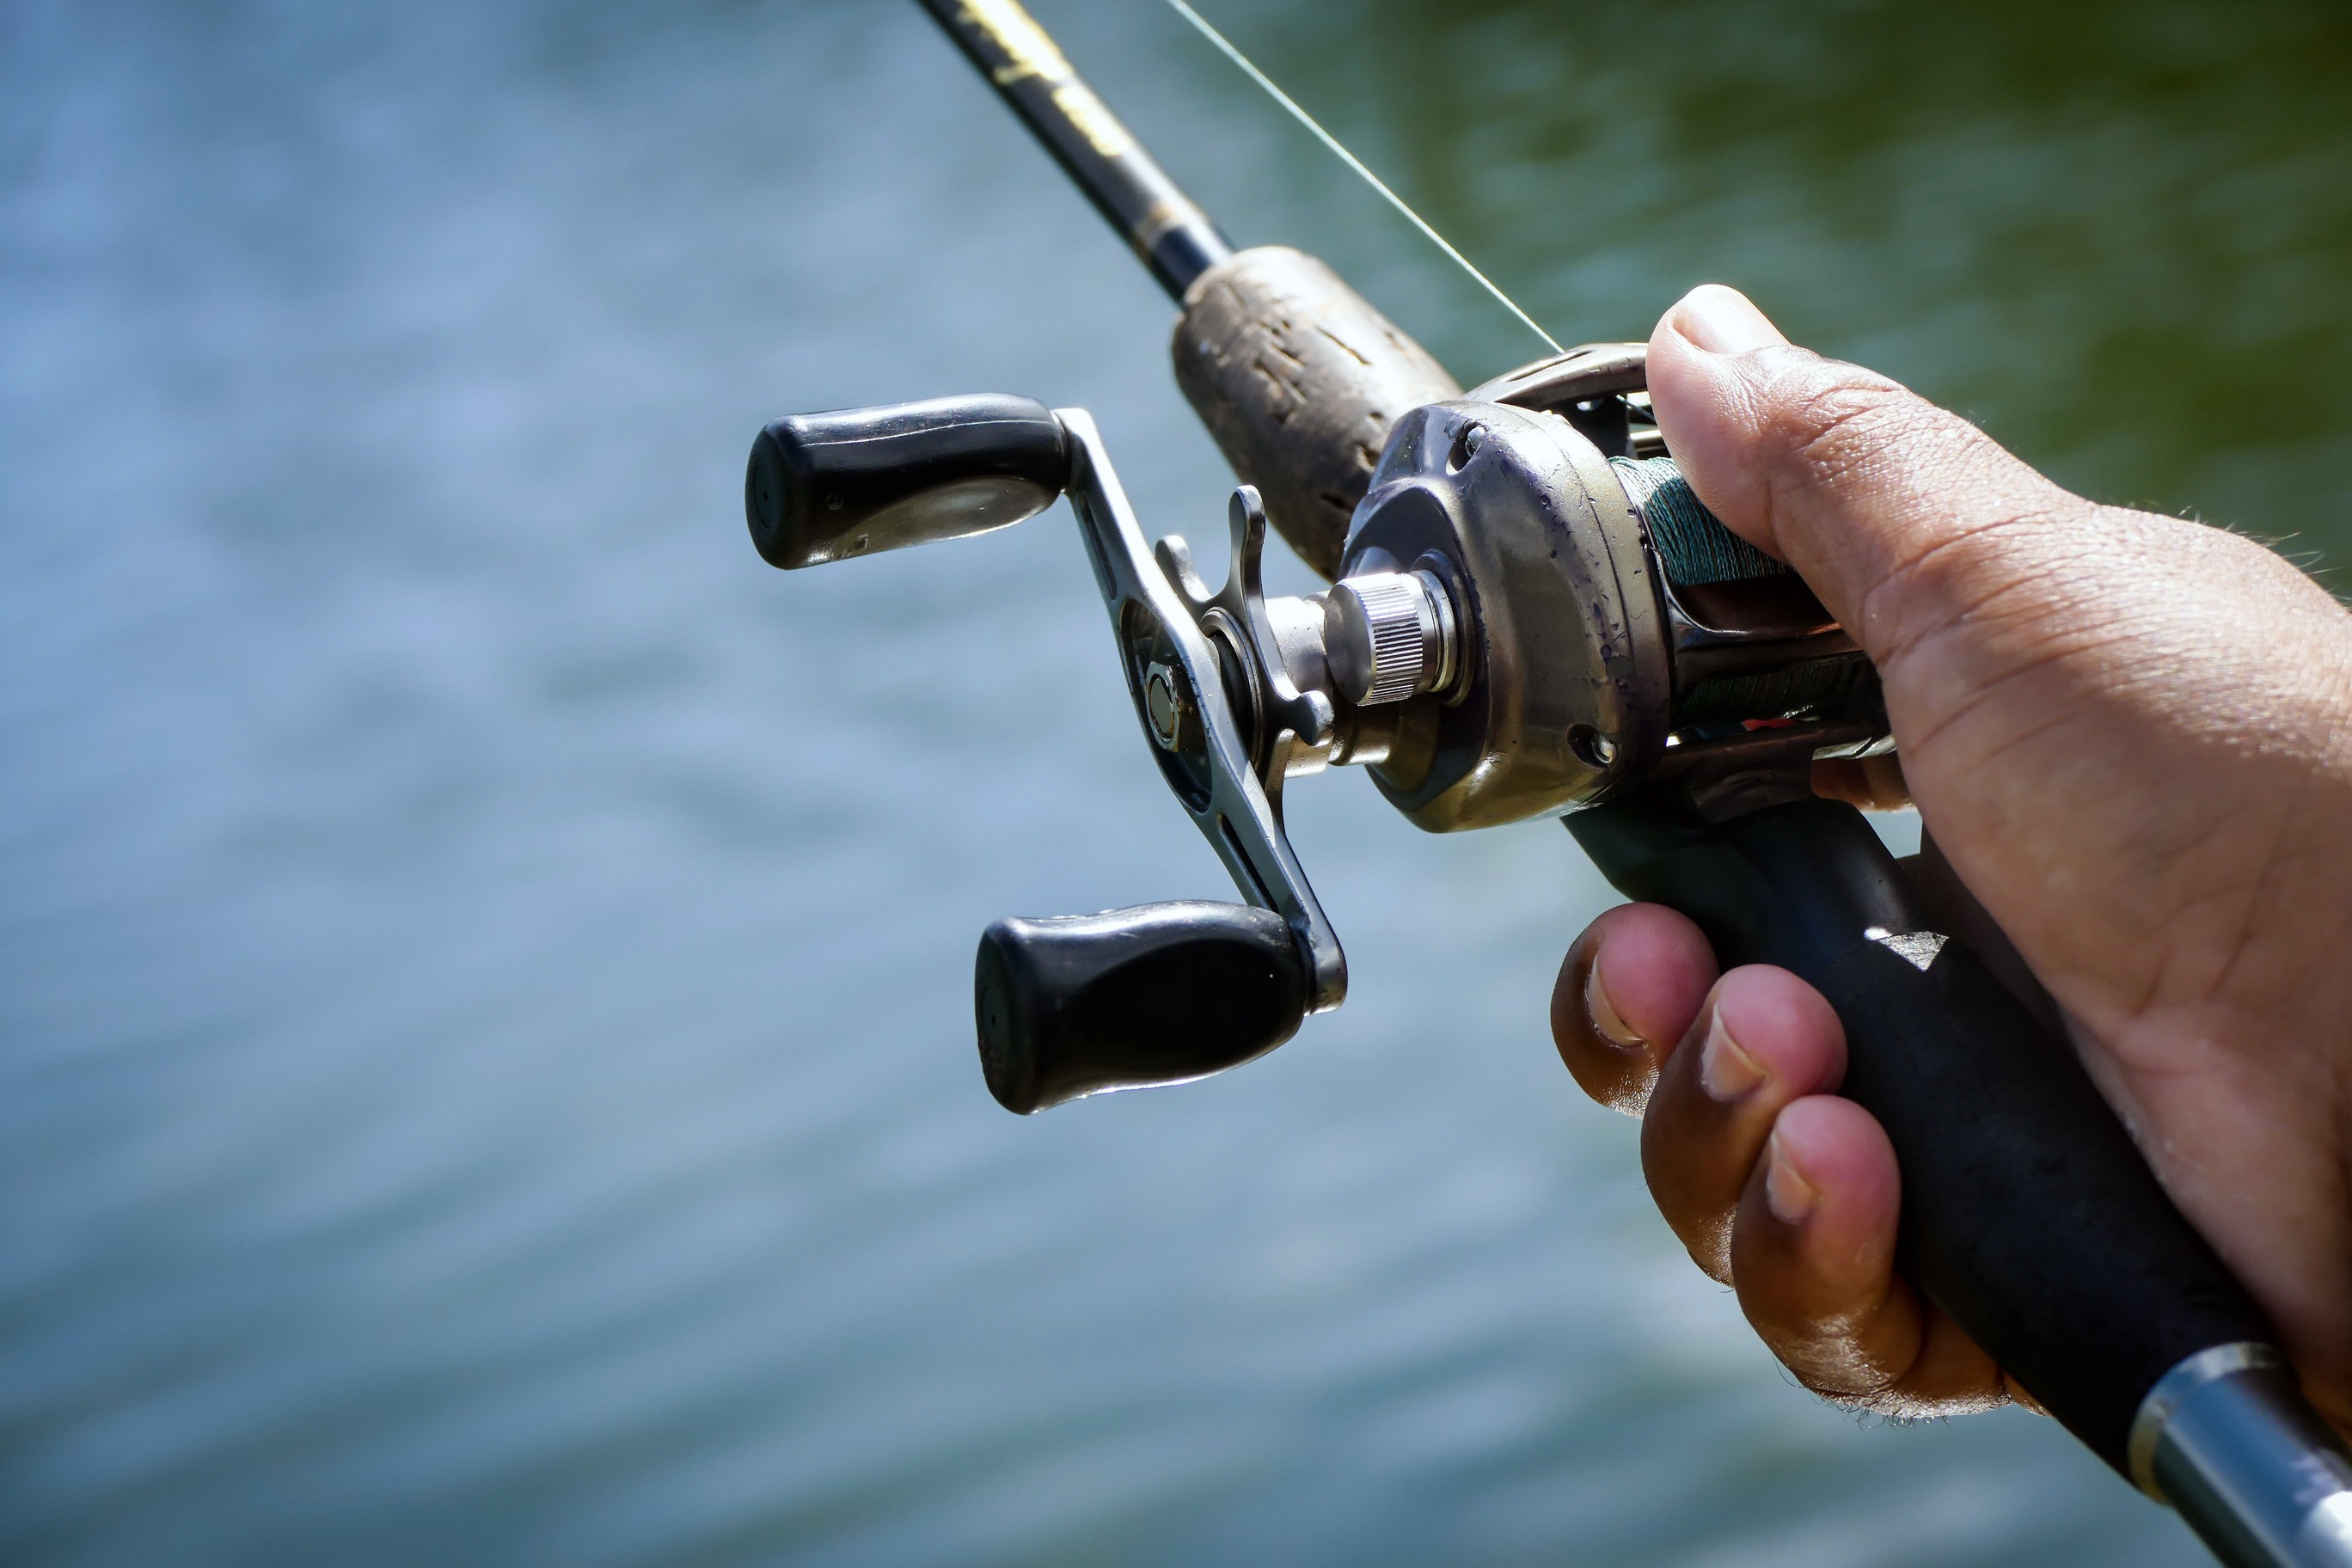 types of fishing reels: a baitcasting reel in the hand of an angler